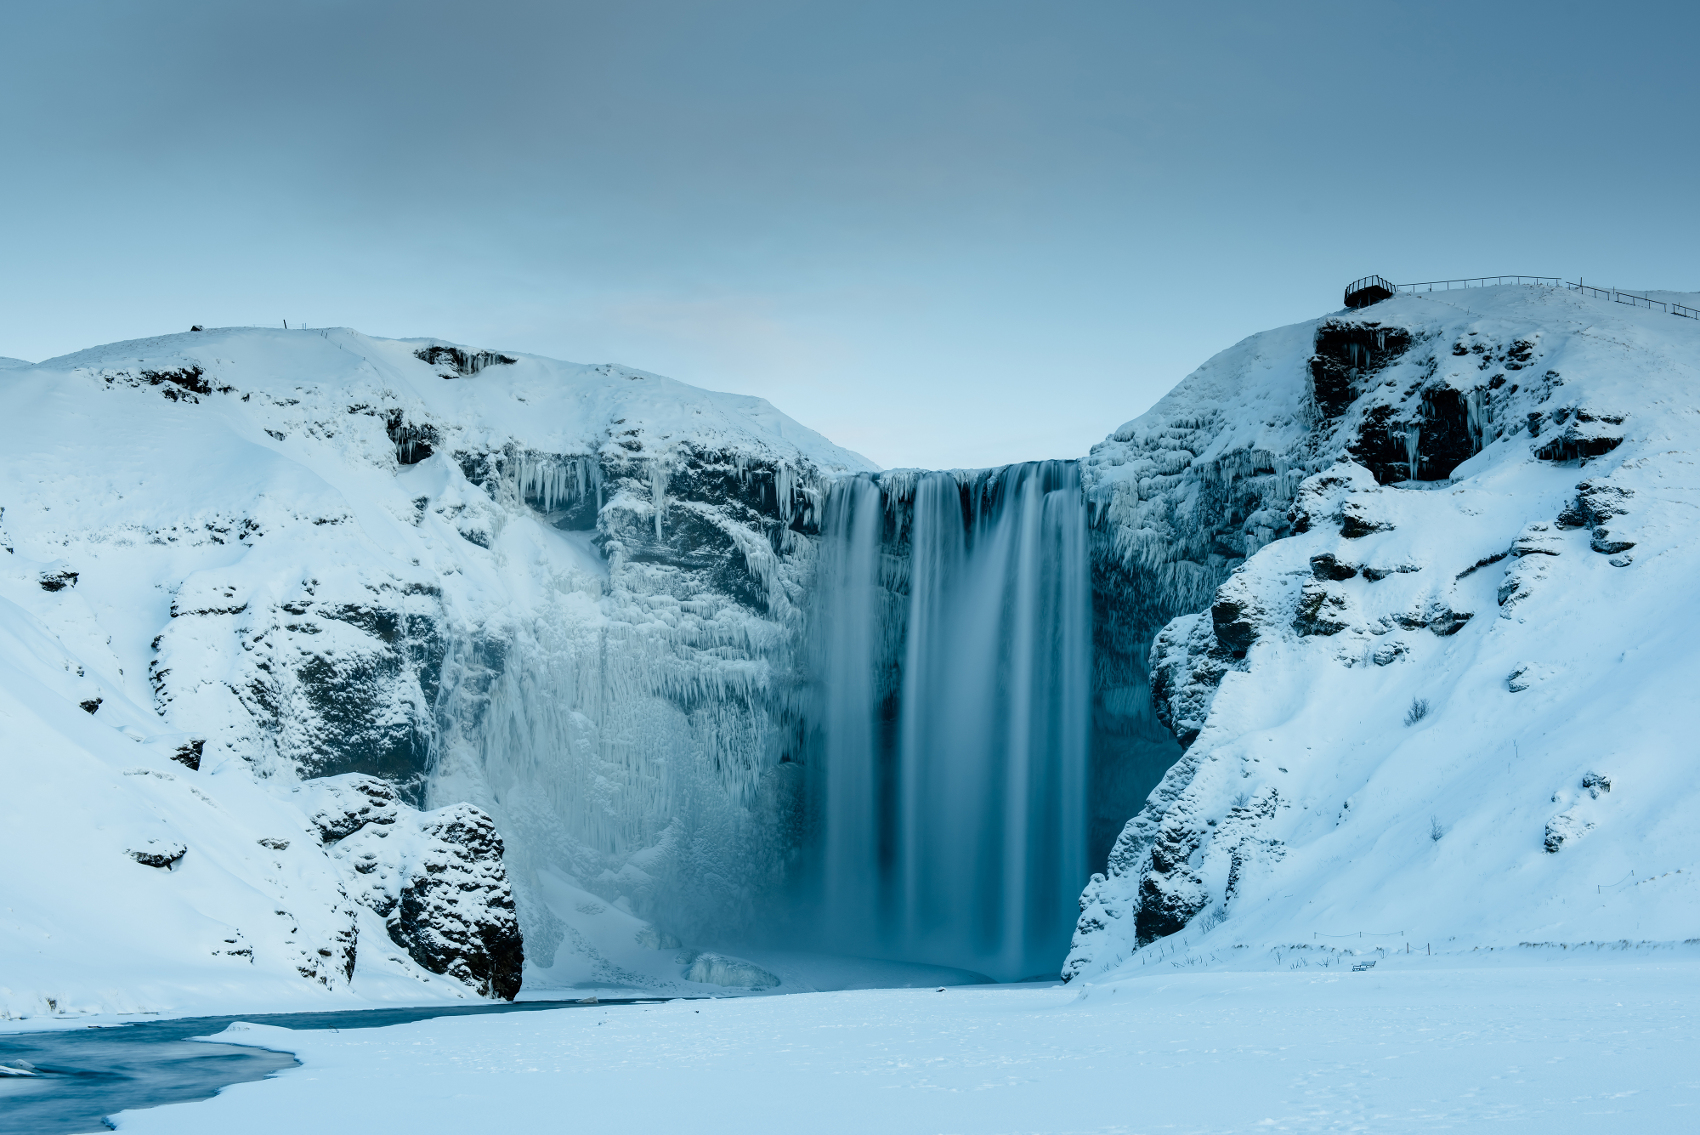 4 Day South Coast and West Iceland Small Group Tour with Blue Ice Cave - day 1